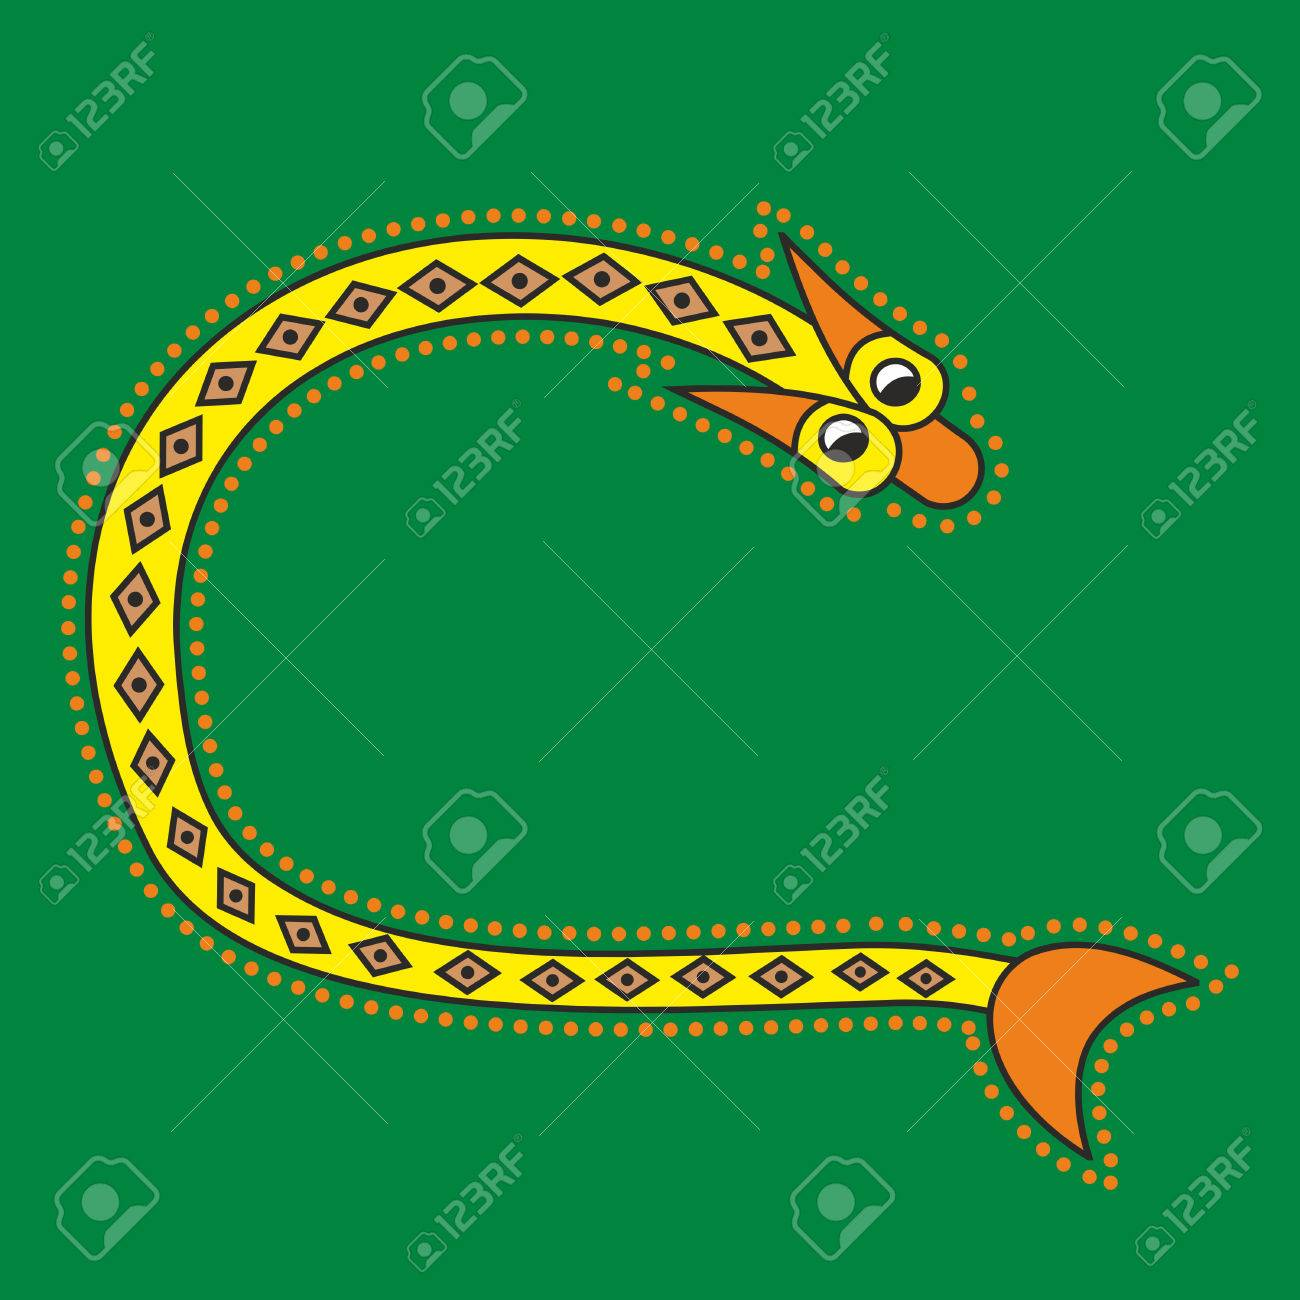 Decorative Ornamental Initial Letter C In Celtic Style Form Of Snake Like An Illustration